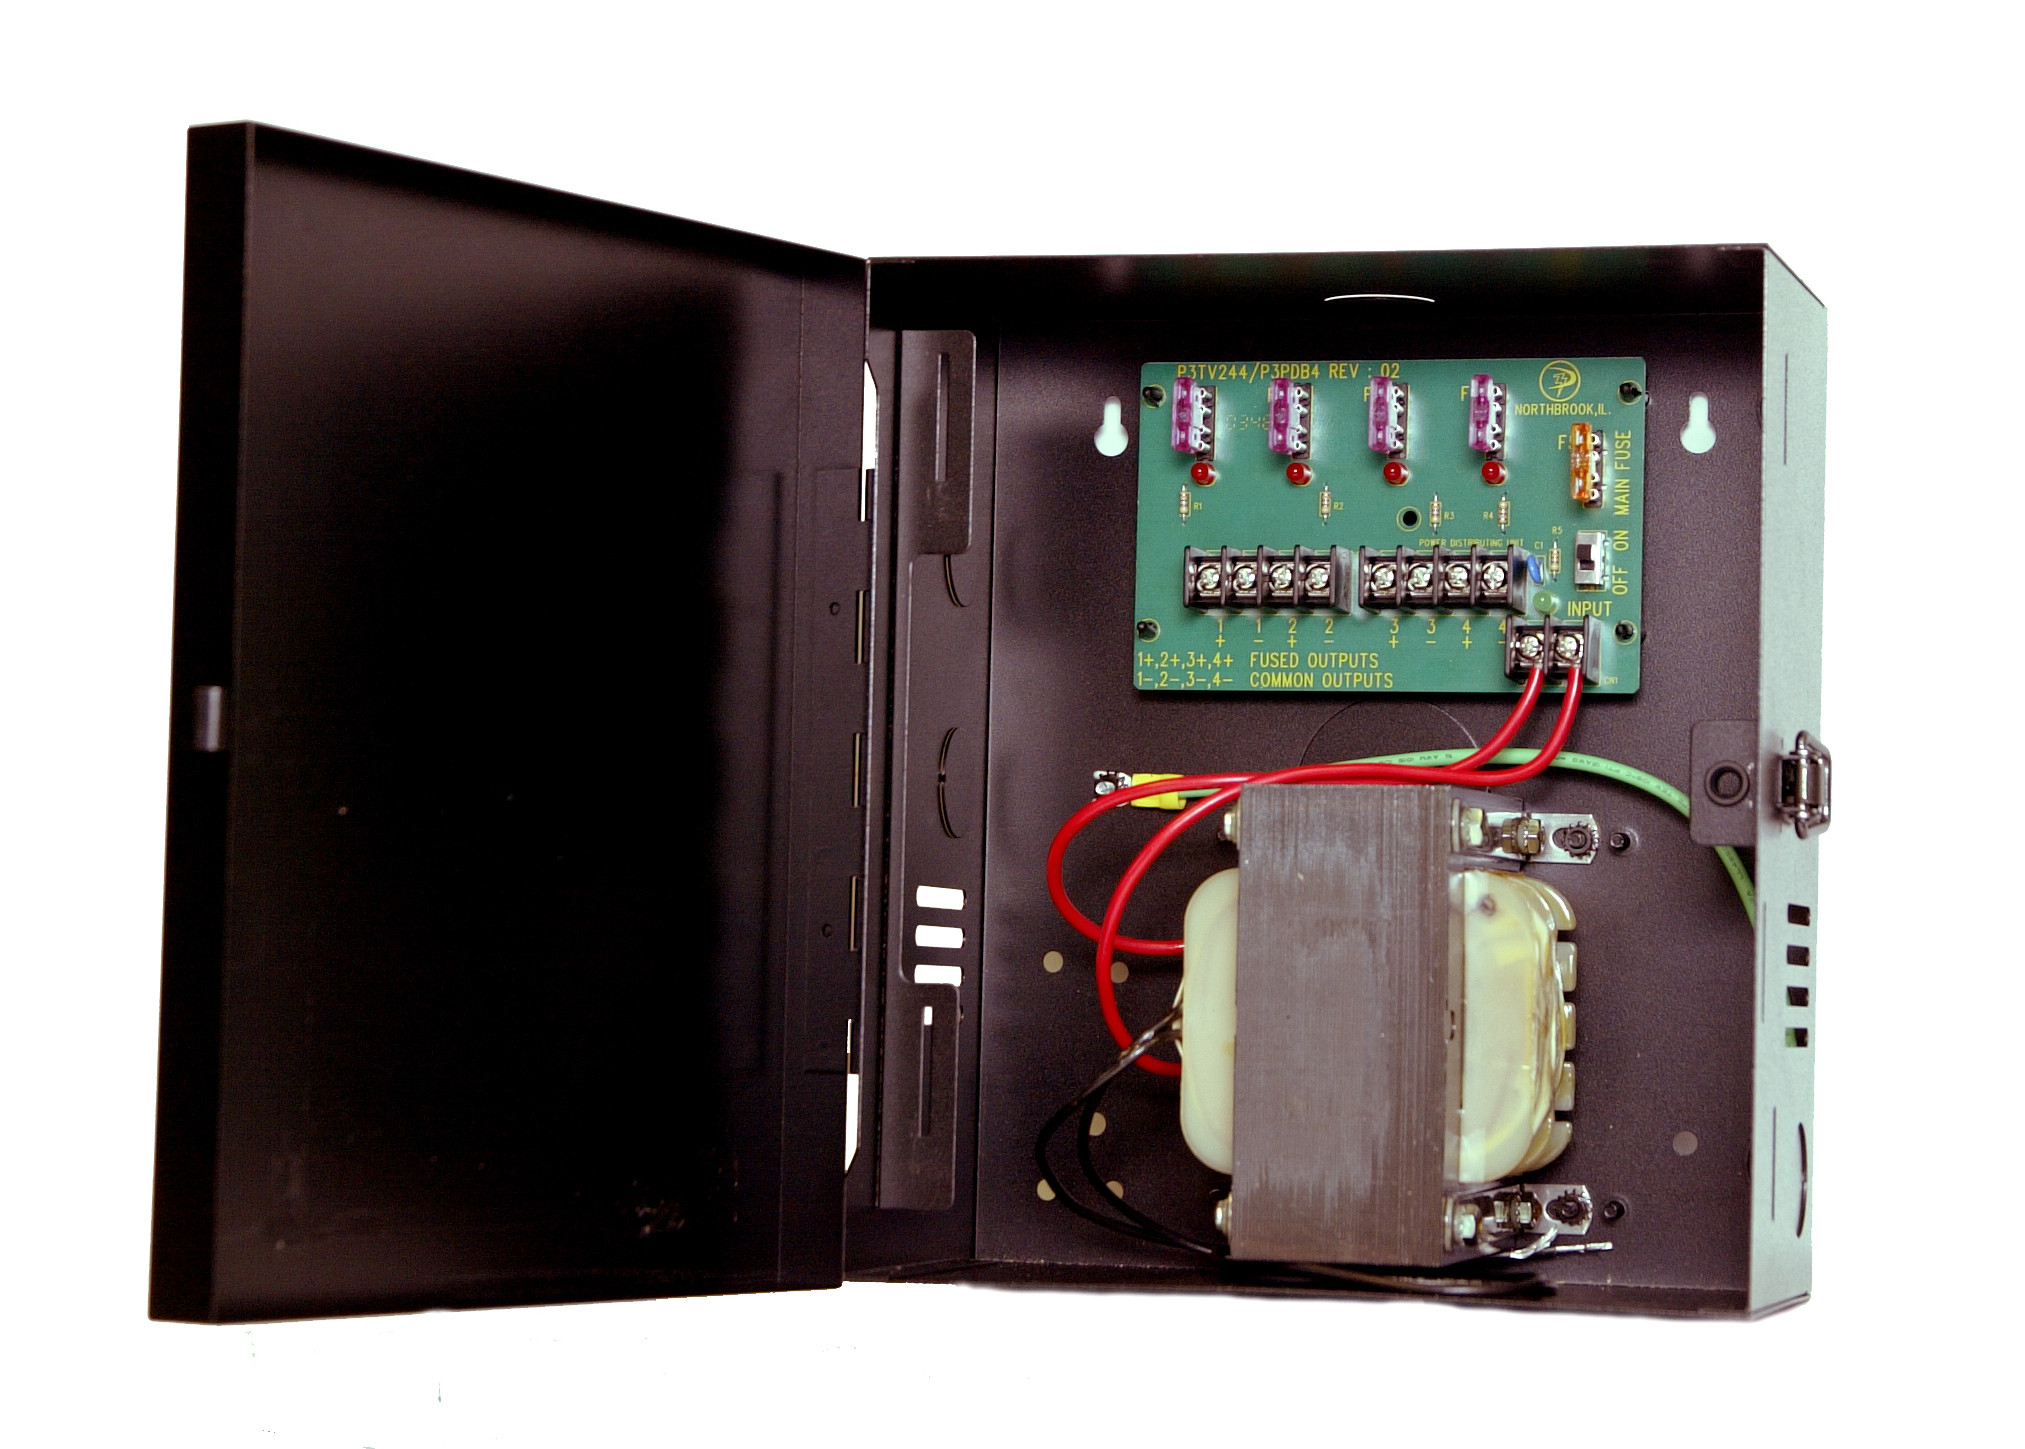 CCTV Power Supply - 24 VAC, 4 Out, 12.5 Amp, Fused